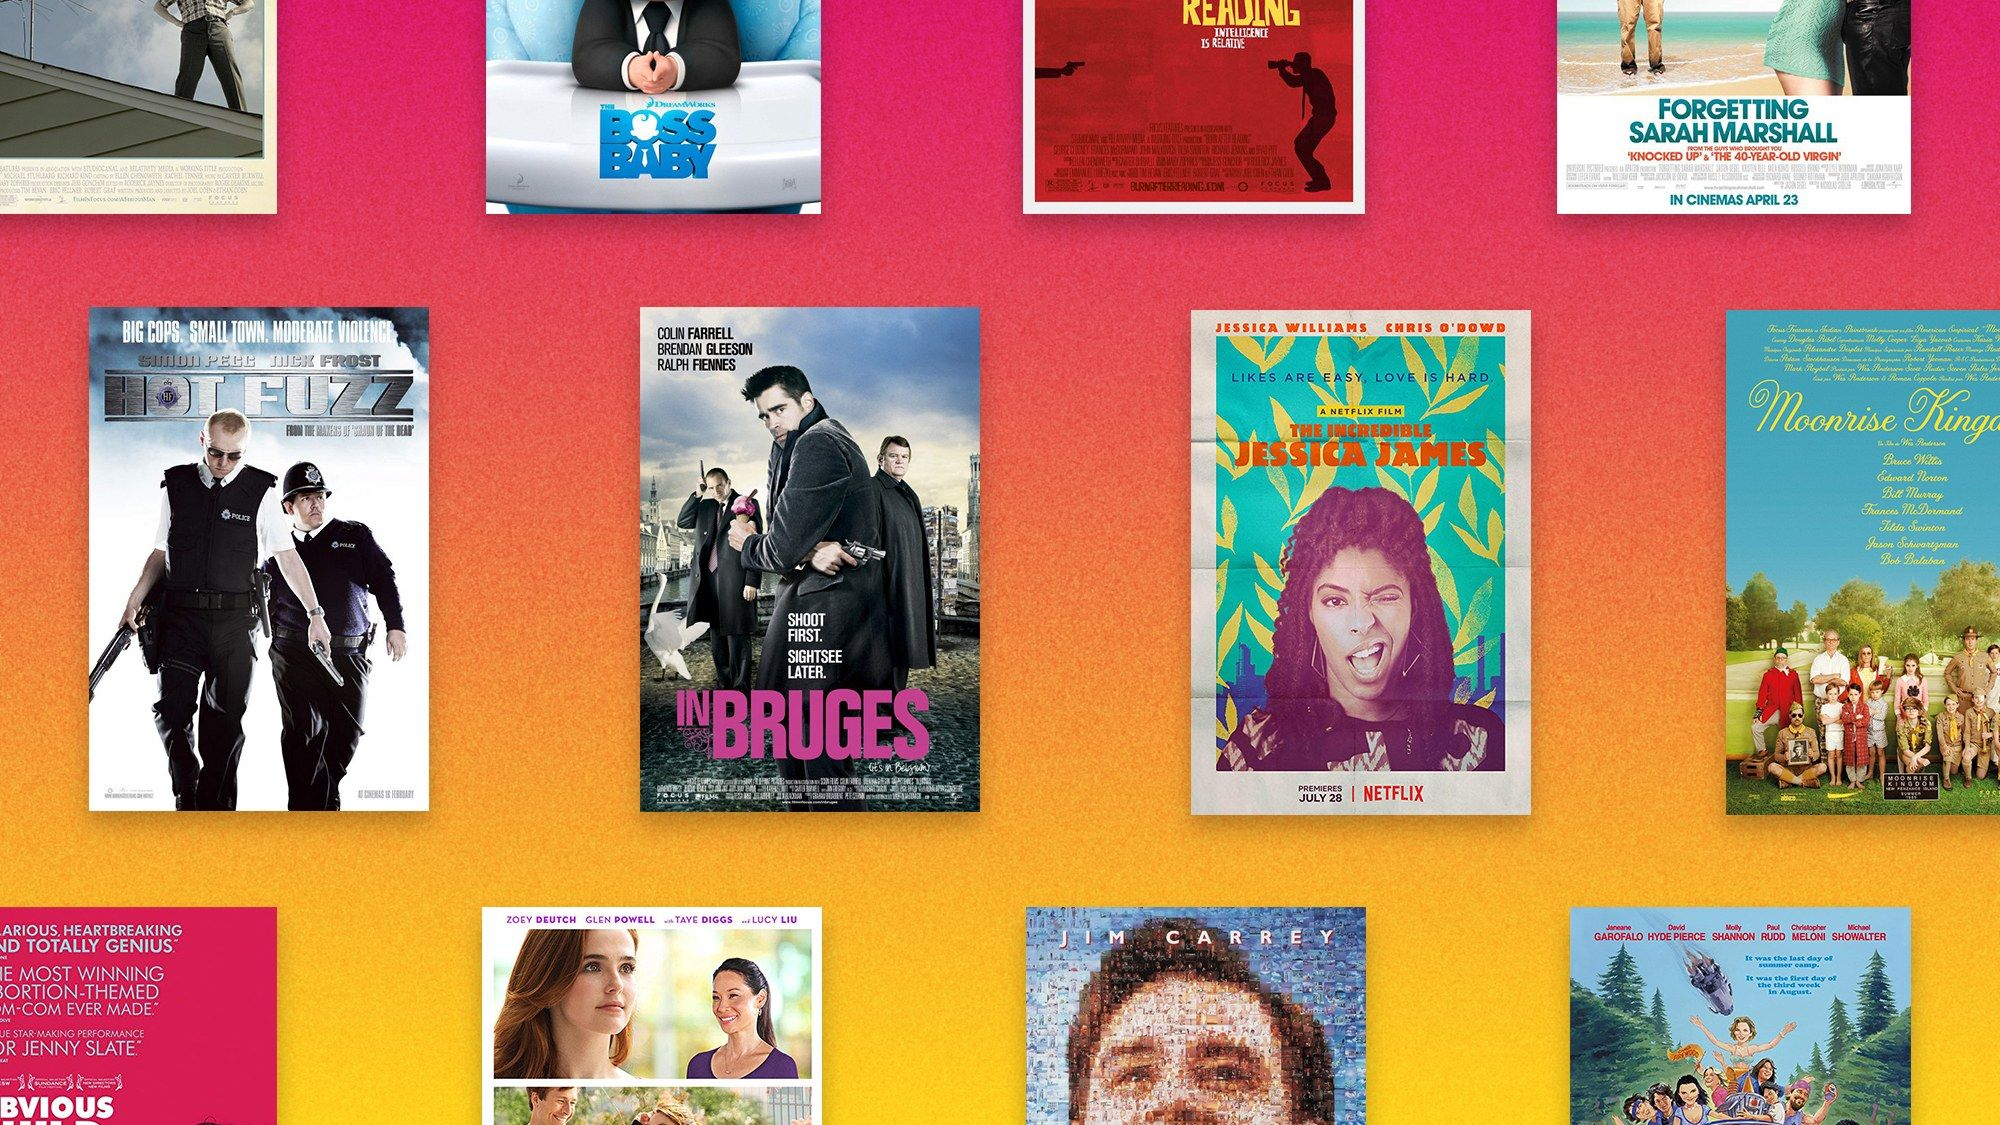 The 12 Best Comedy Movies on Netflix | Good comedy movies, Comedy movies on  netflix, Comedy movies